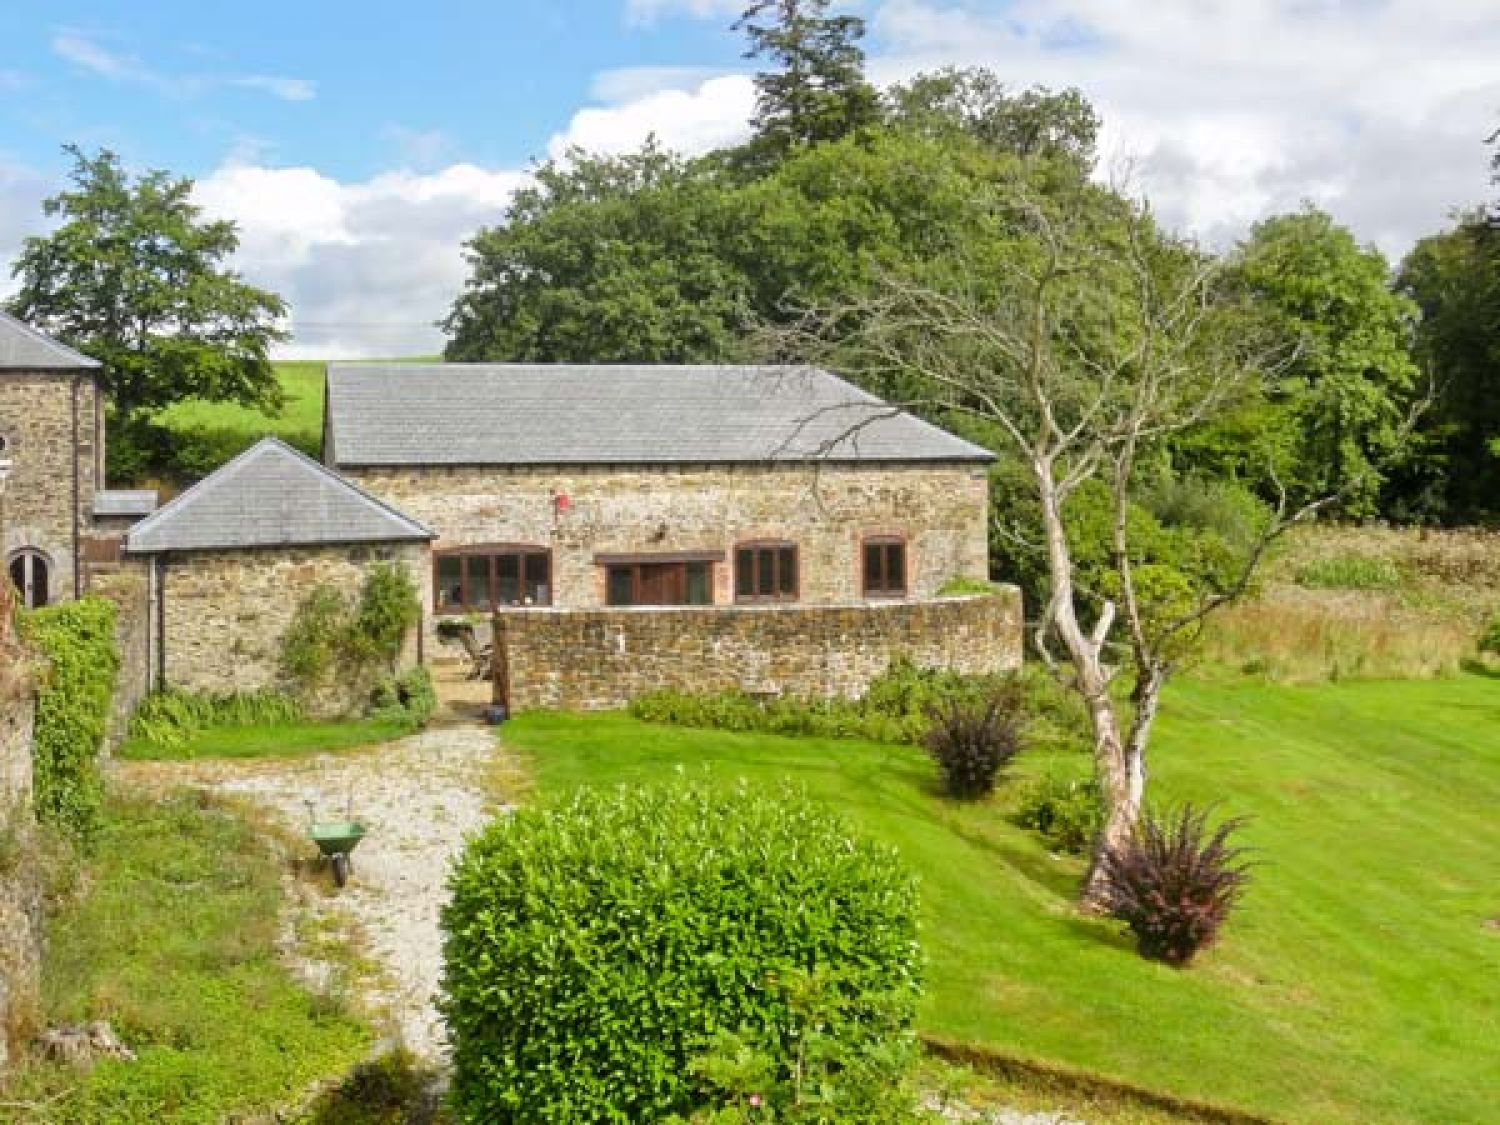 Holiday Cottages in Devon: The Coach House, Bratton Clovelly   sykescottages.co.uk